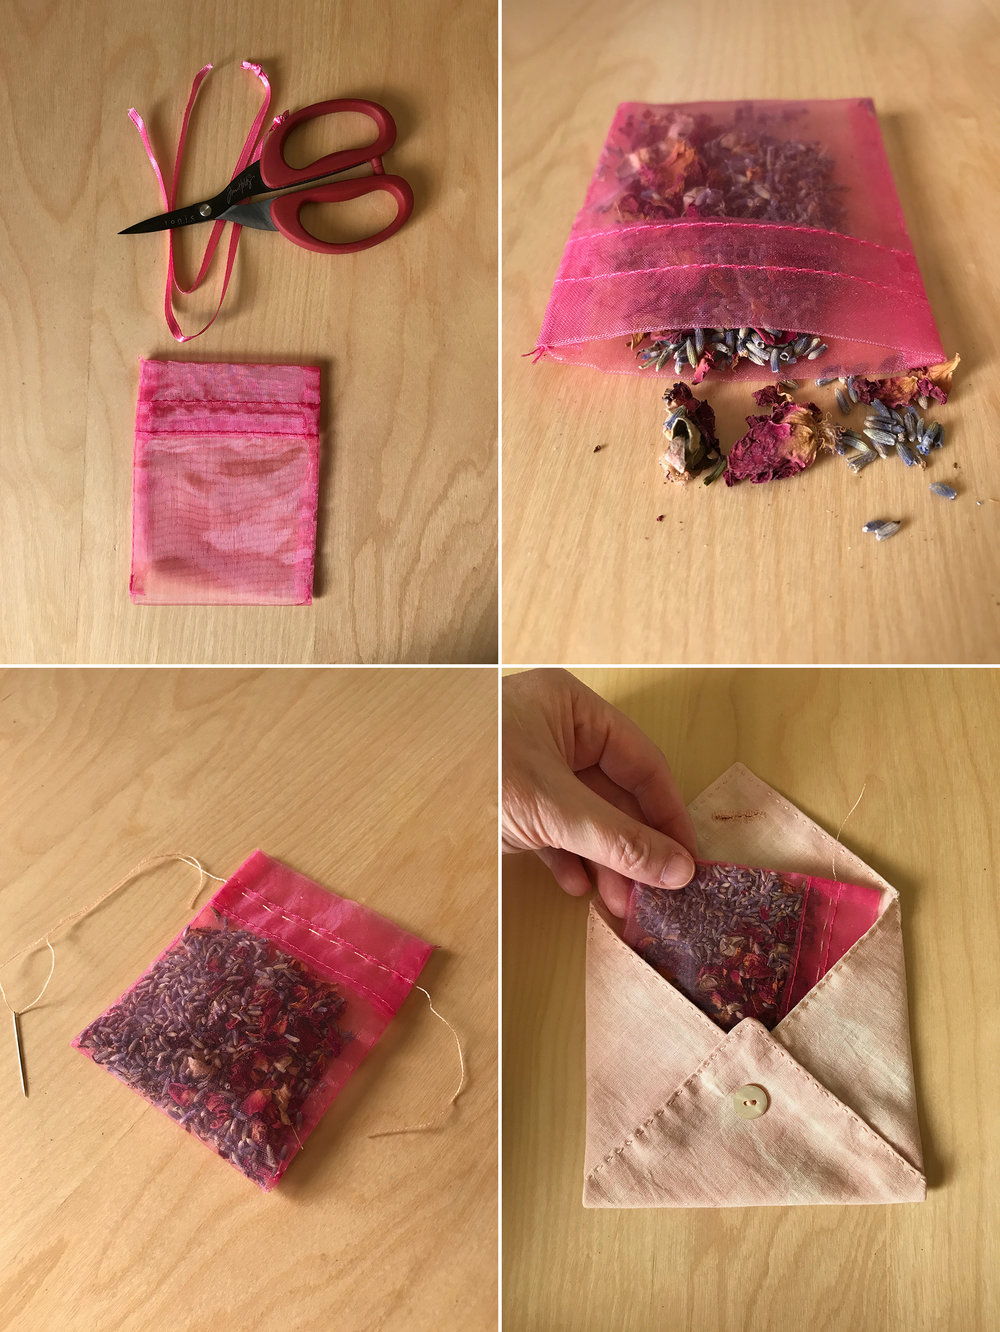 51. Give your finished envelope a little loving kiss and set her aside for a moment. If your little jewelry pouch has a drawstring, remove it. 52. Fill the pouch with a blend of dried lavender and rose buds. Don't fill too full; you want the finished dream pillow to be soft and easy. 53. To temporarily seal the pouch, make a very loose running stitch along the opening. No need to knot, really. When the dried flower mix looses it's pungency, you can easily remove the stitched thread, refill with fresh flowers and sew a new loose seam. 54. Insert the pouch into your finished envelope.